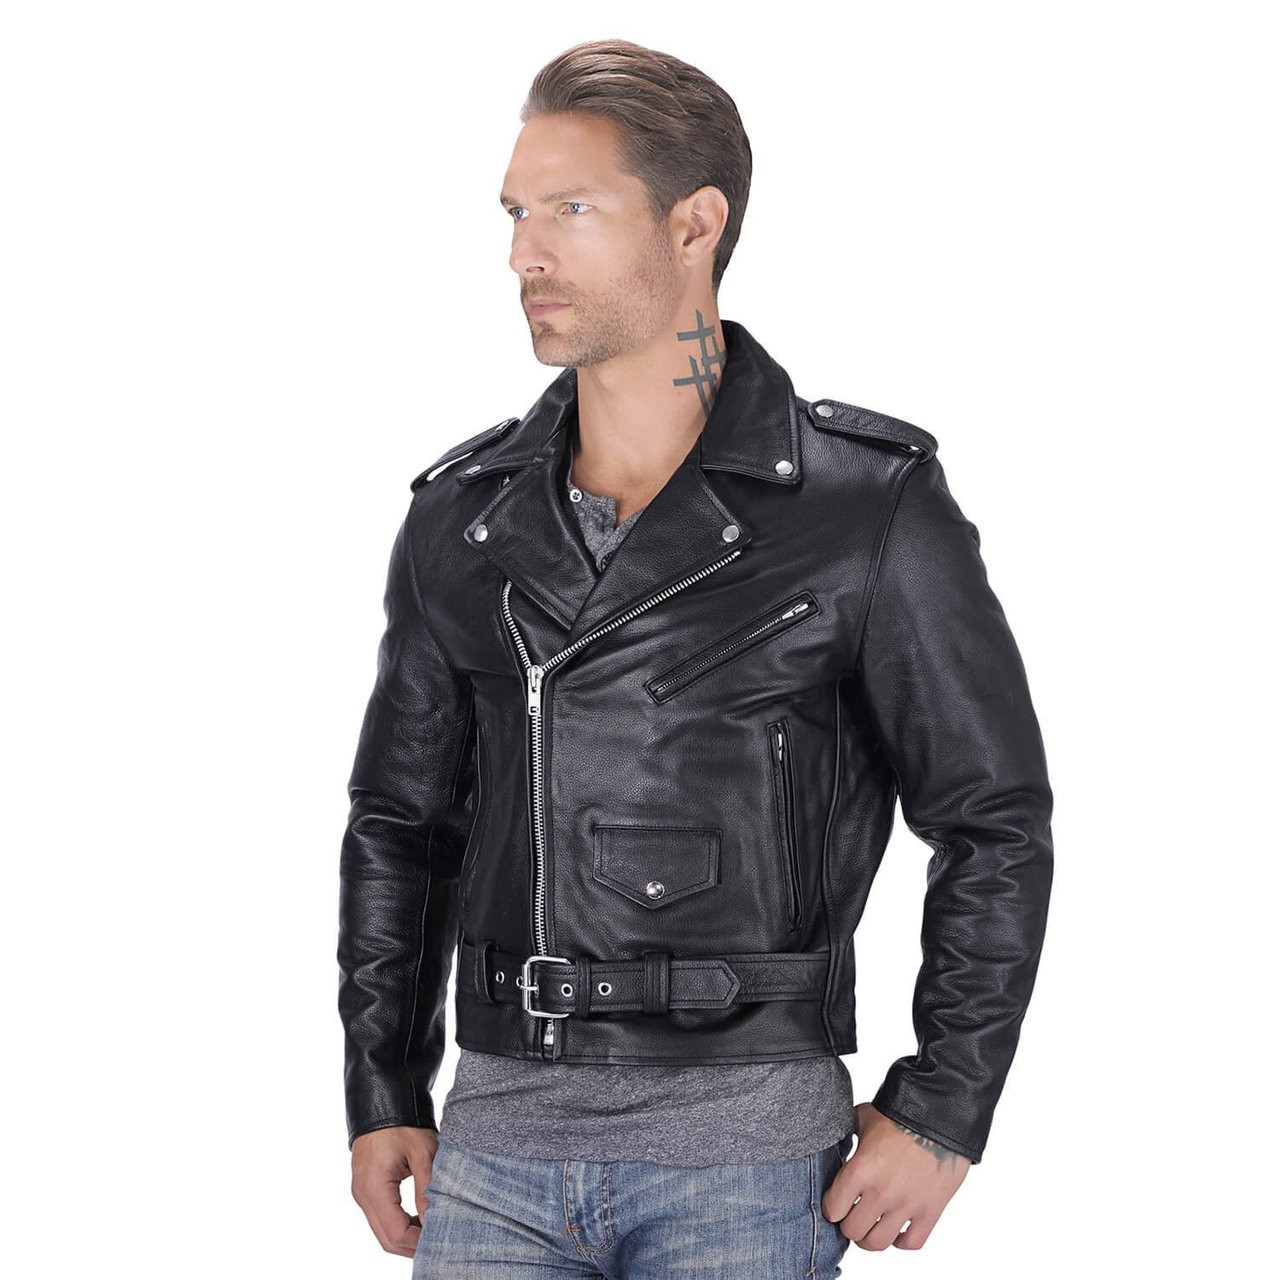 Nomad USA Classic Leather Biker Jacket - Motorcycle House